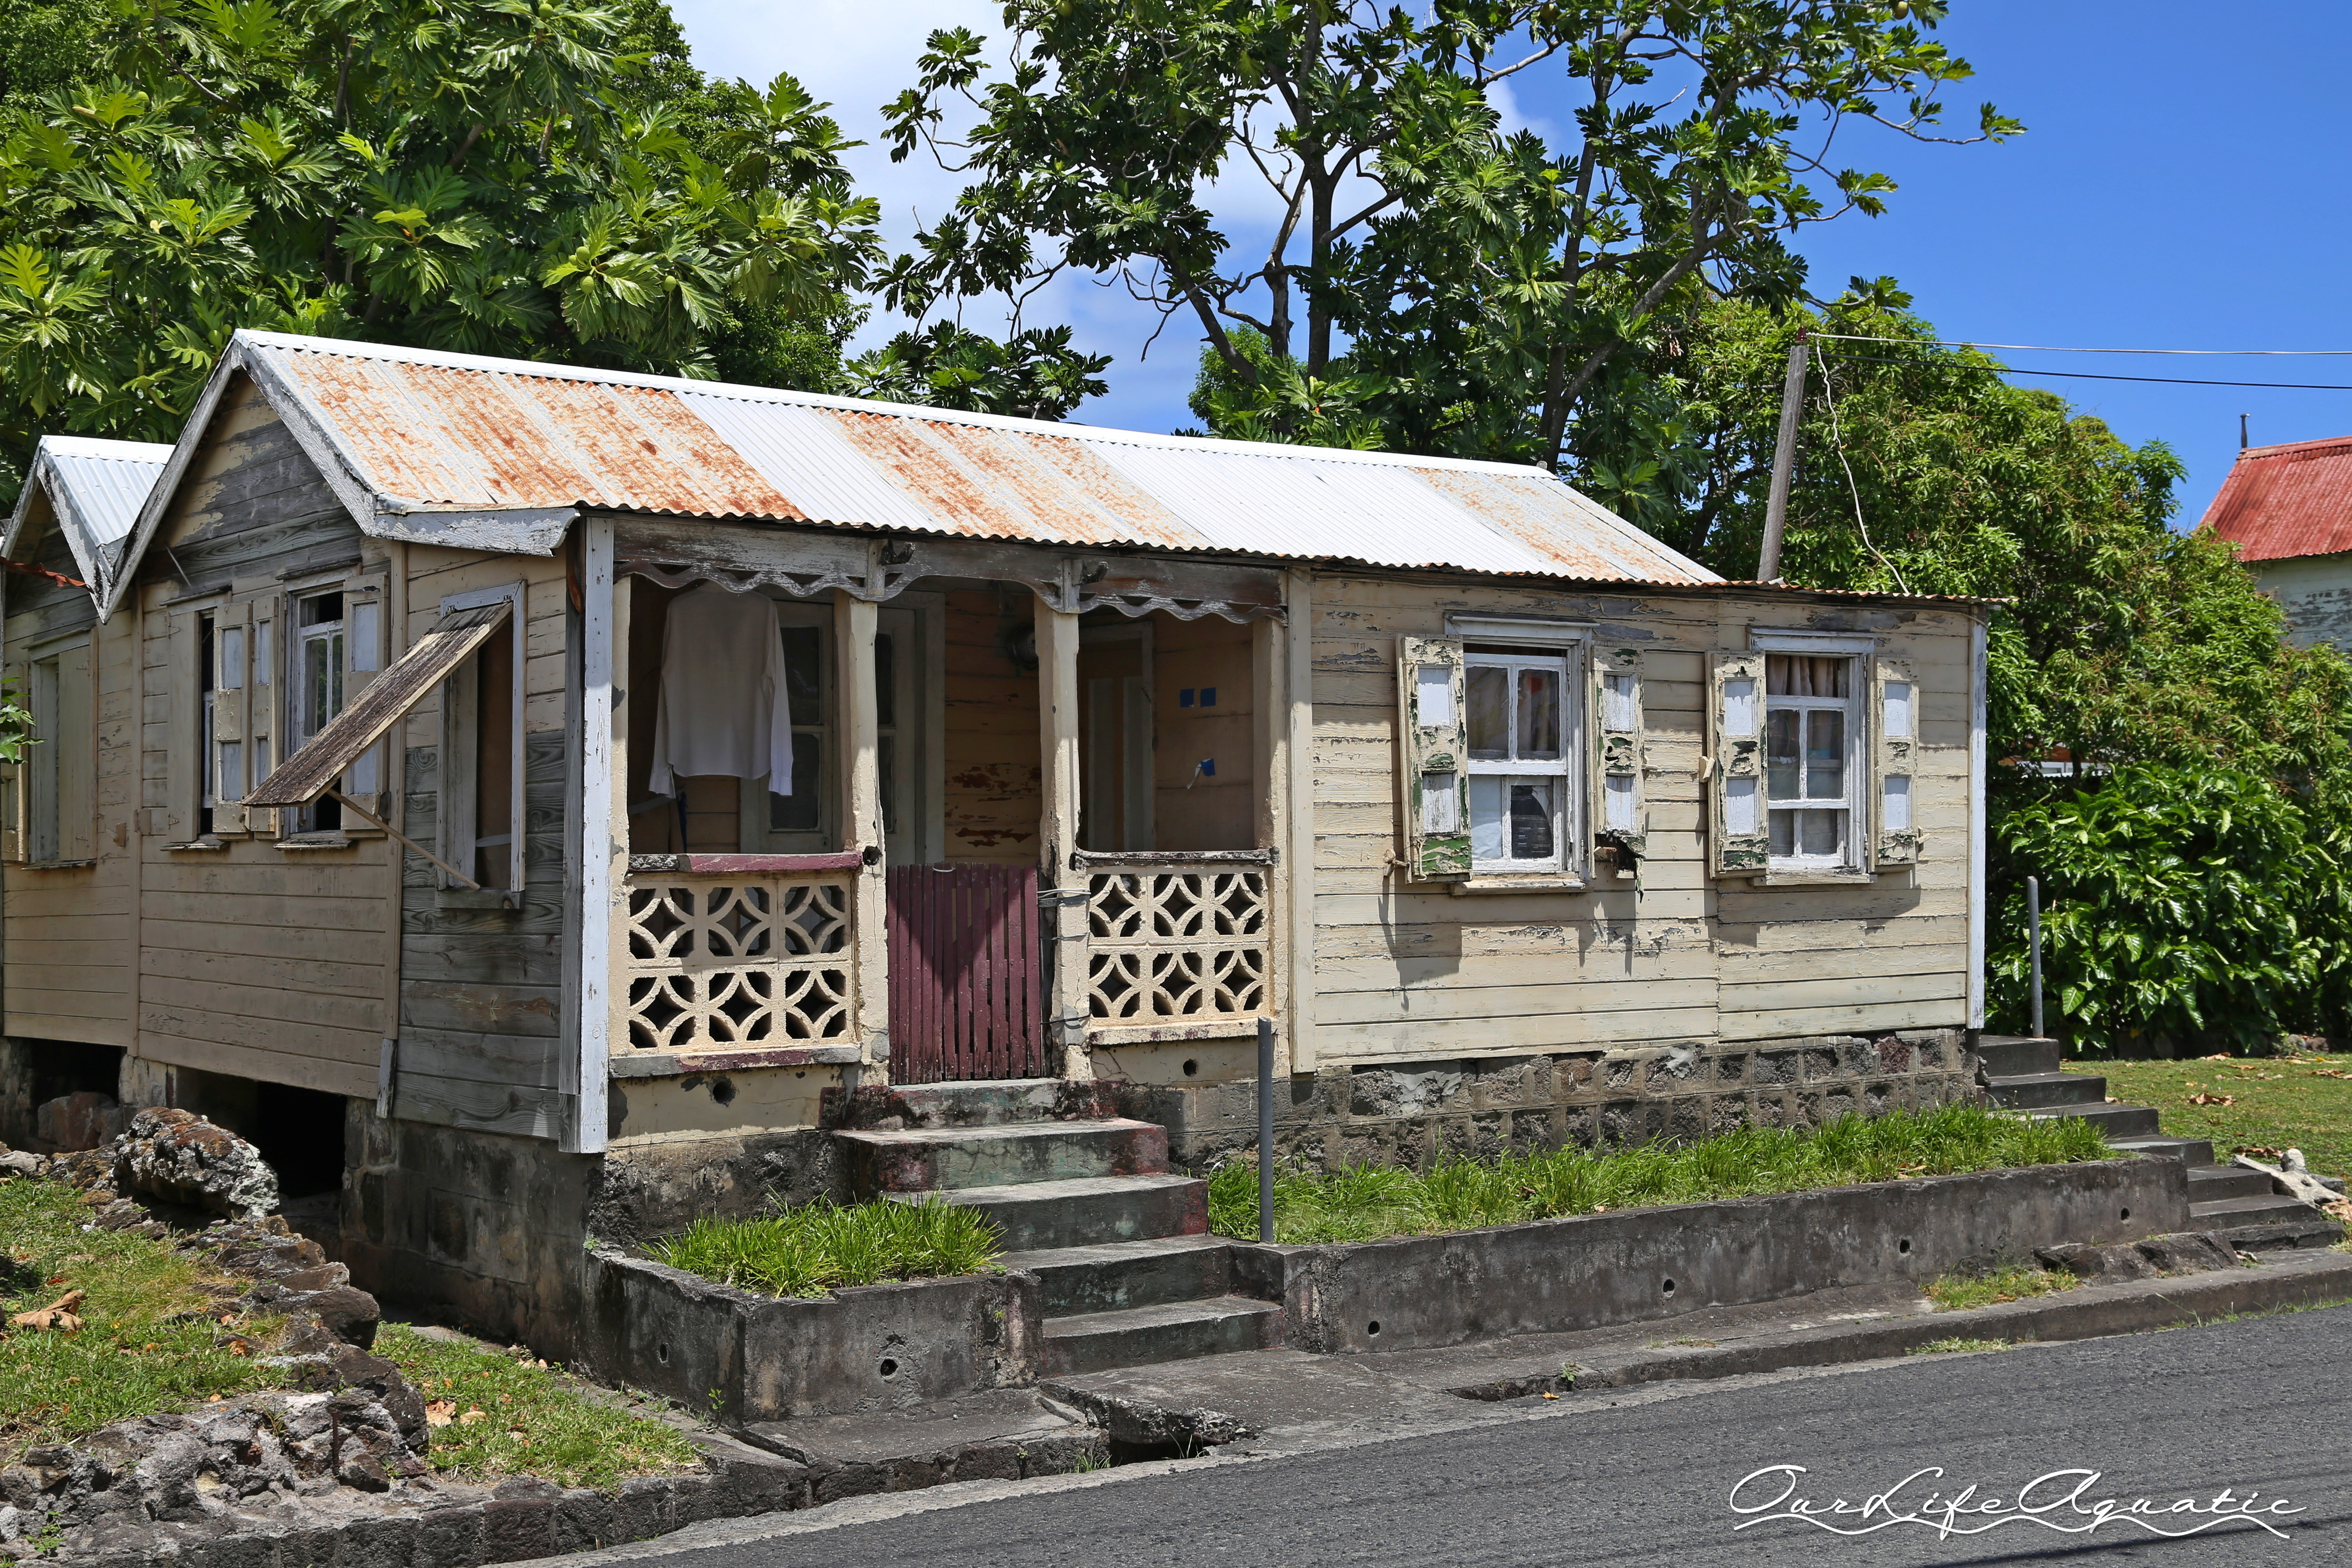 Quaint cottages line the streets of Charlestown